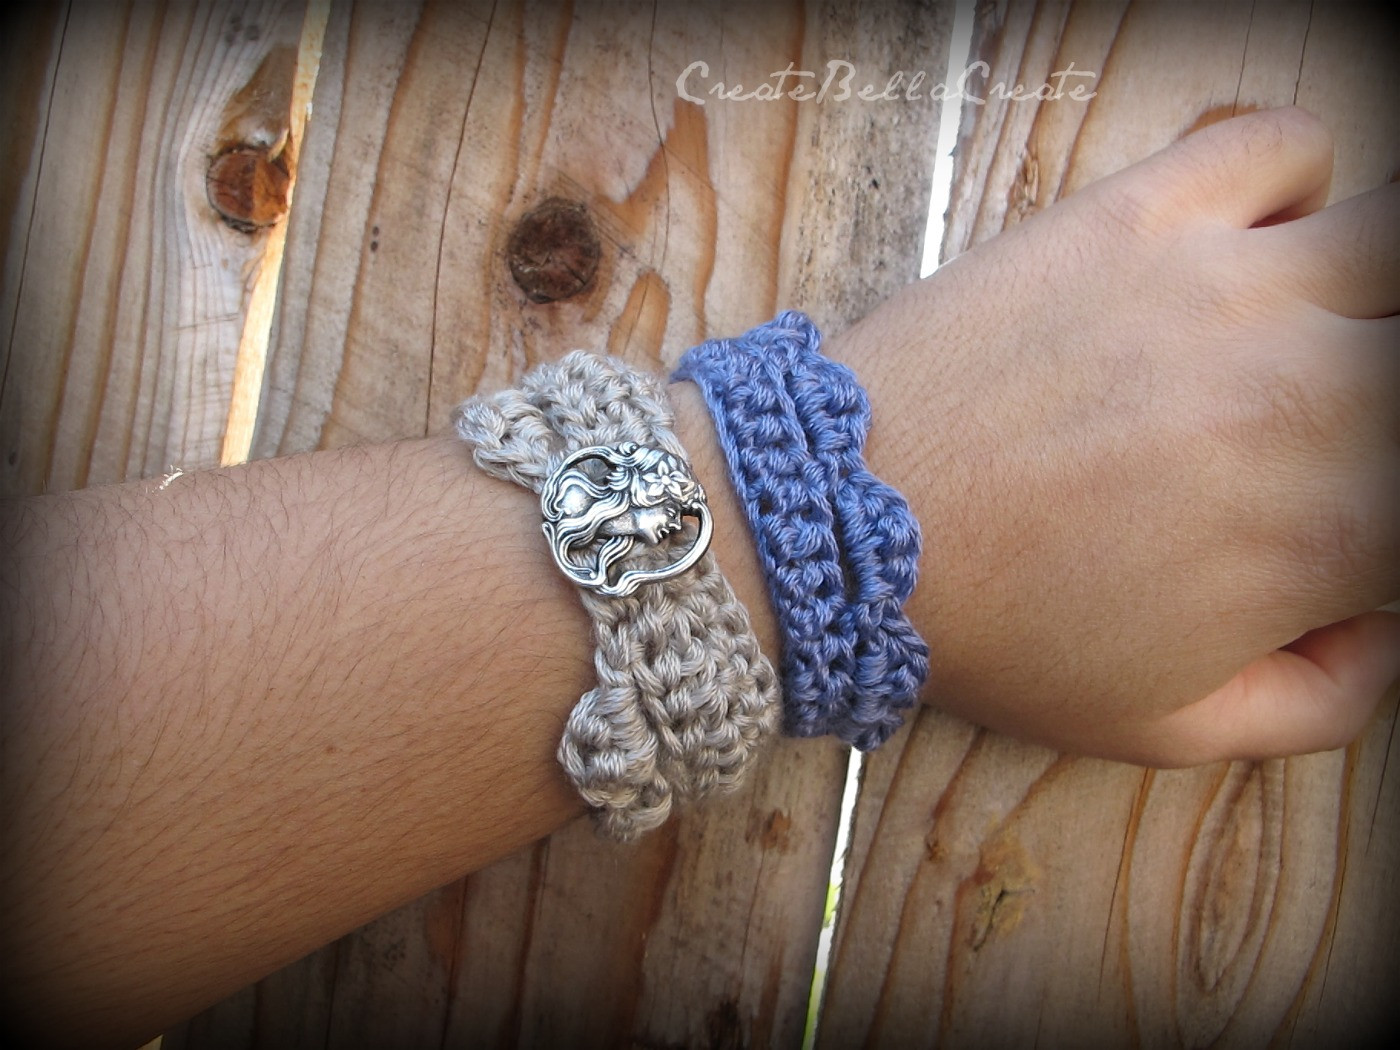 Crochet Bracelets Best Of Crochet Pretty Bracelets with Patterns Page 2 Of 3 Of Innovative 40 Images Crochet Bracelets